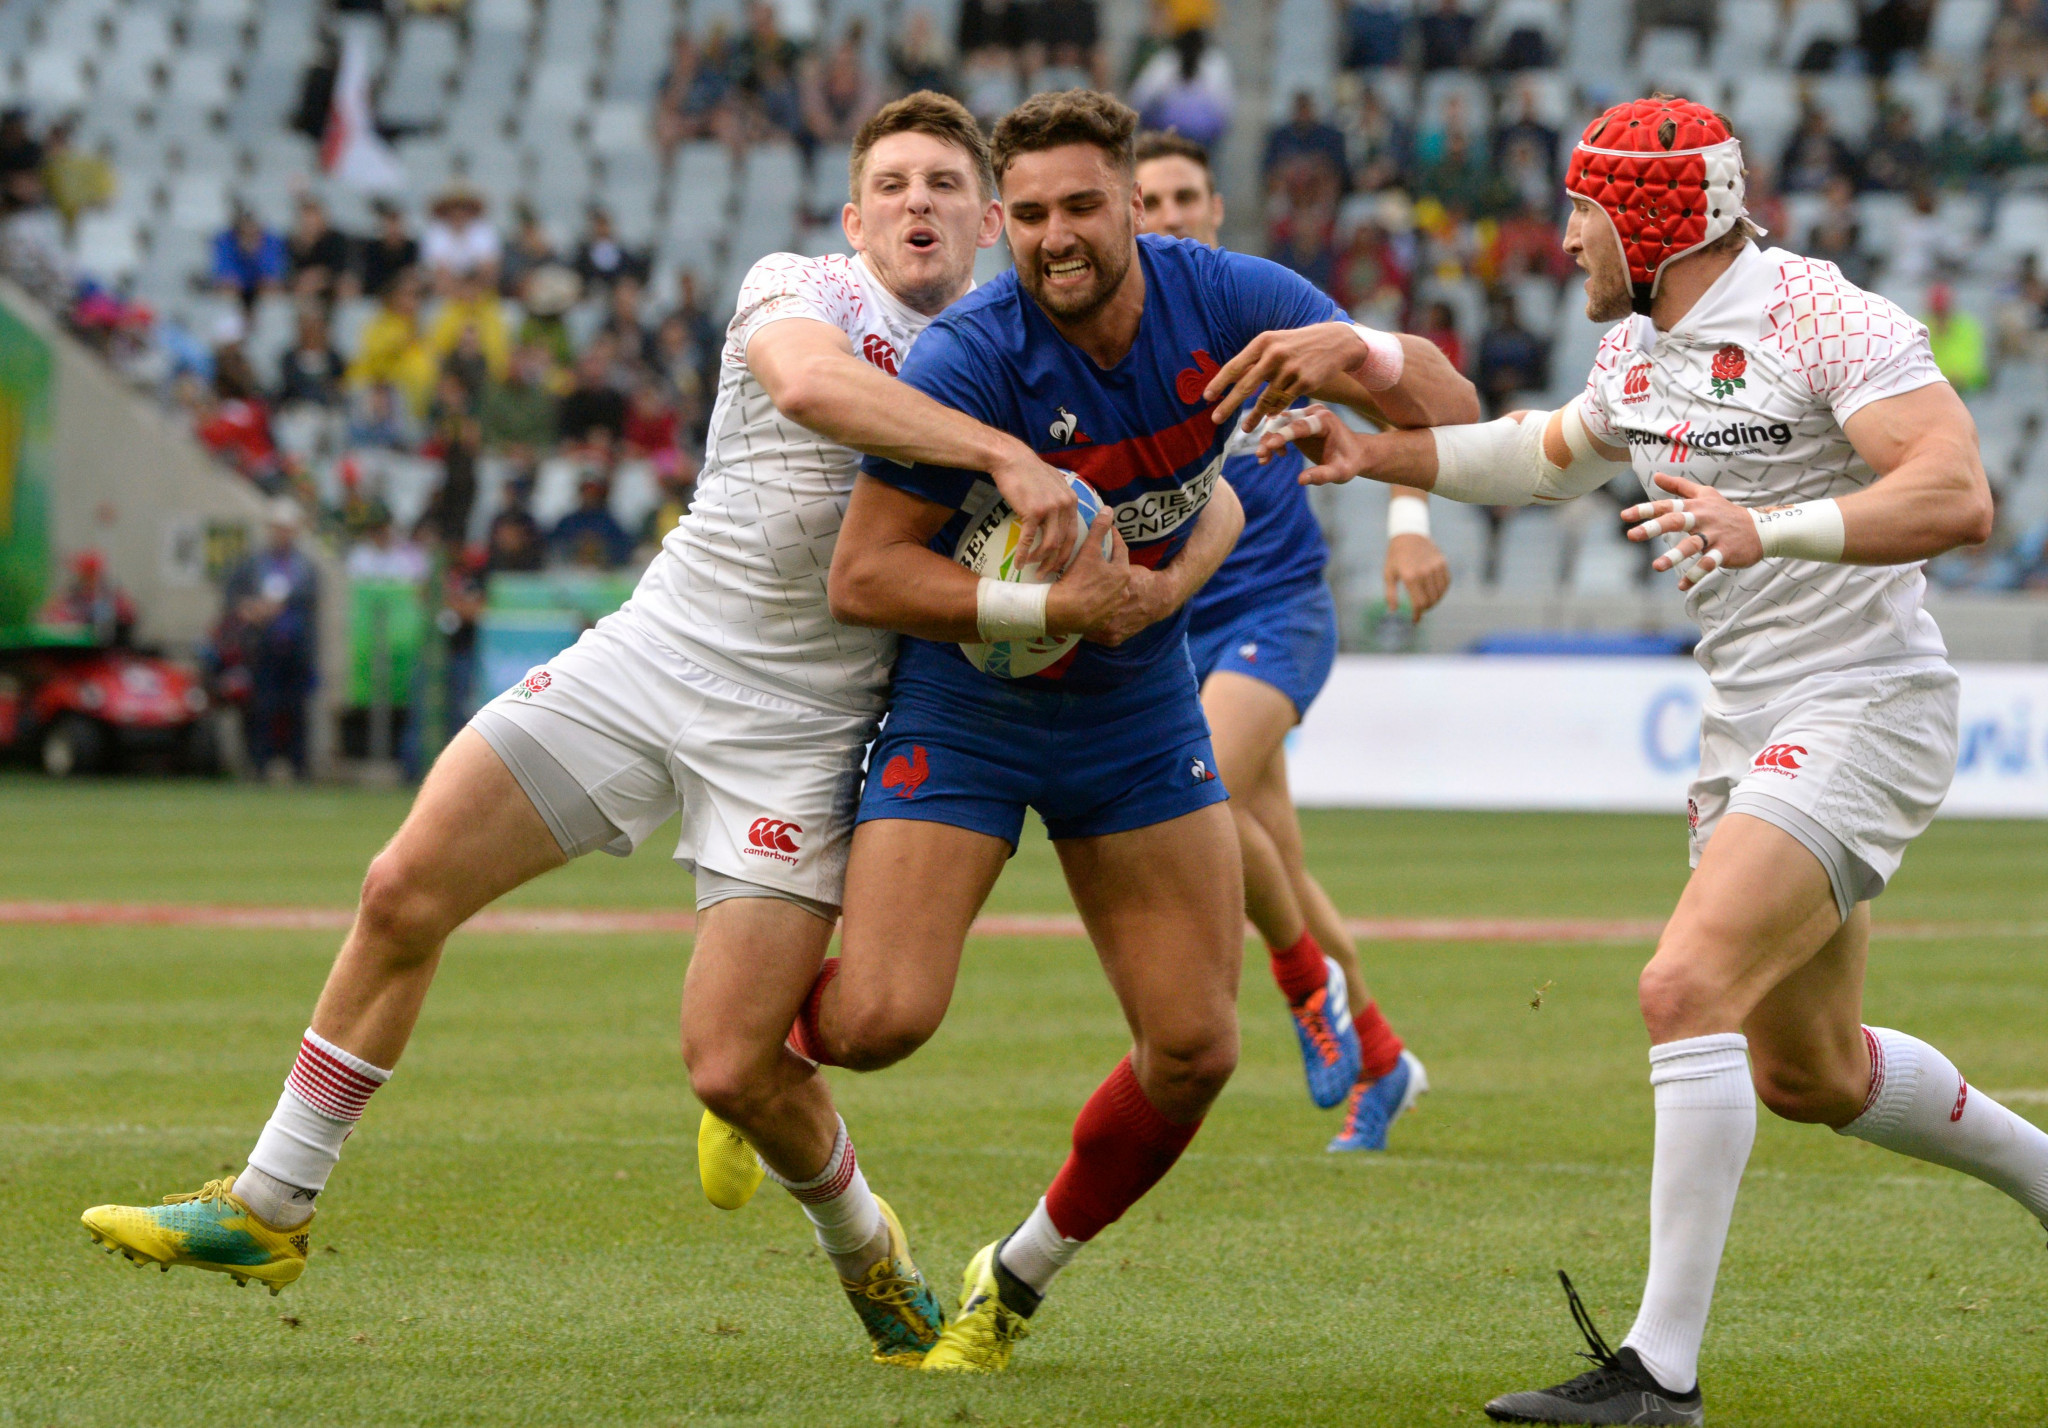 France ensured England would not make the quarter-finals in Cape Town ©Getty Images